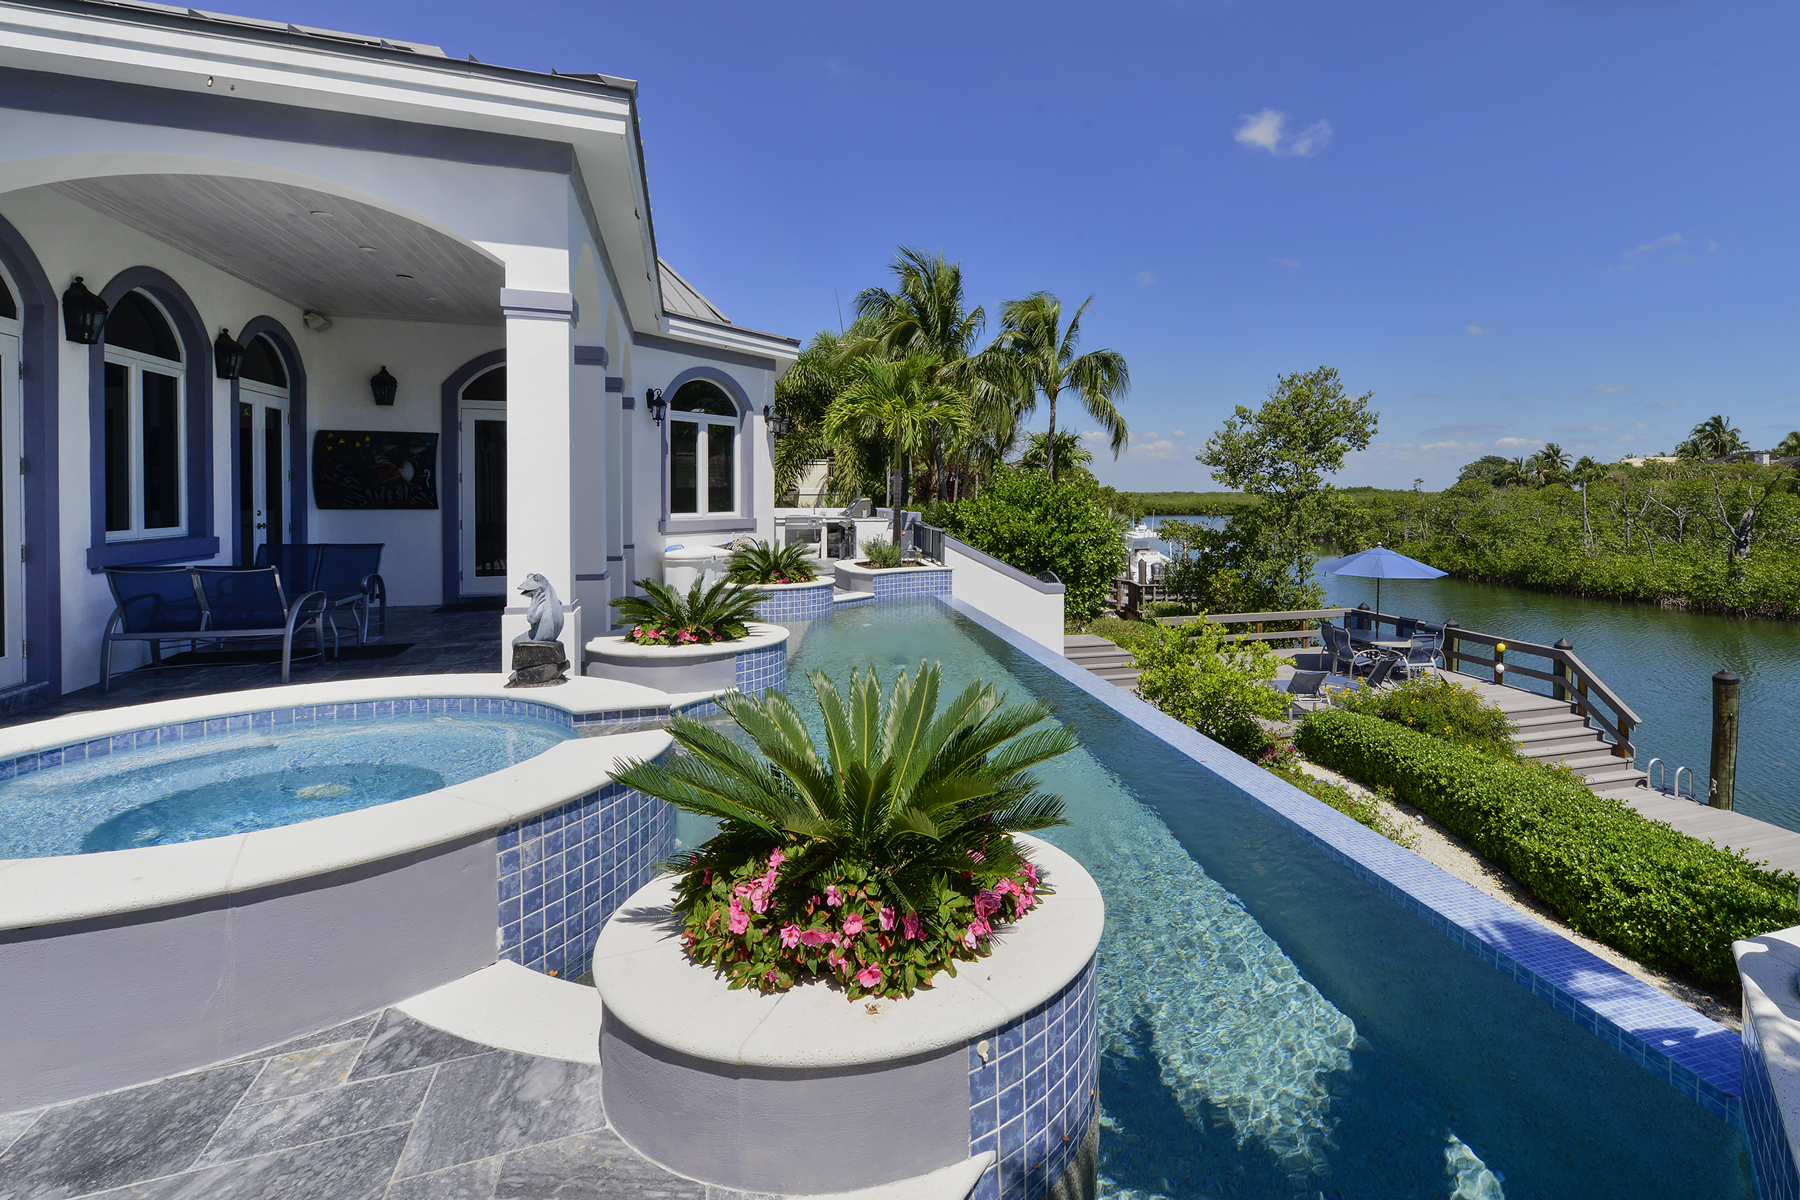 一戸建て のために 売買 アット Custom Built Waterfront Home at Ocean Reef 17 North Pelican Drive Ocean Reef Community, Key Largo, フロリダ, 33037 アメリカ合衆国